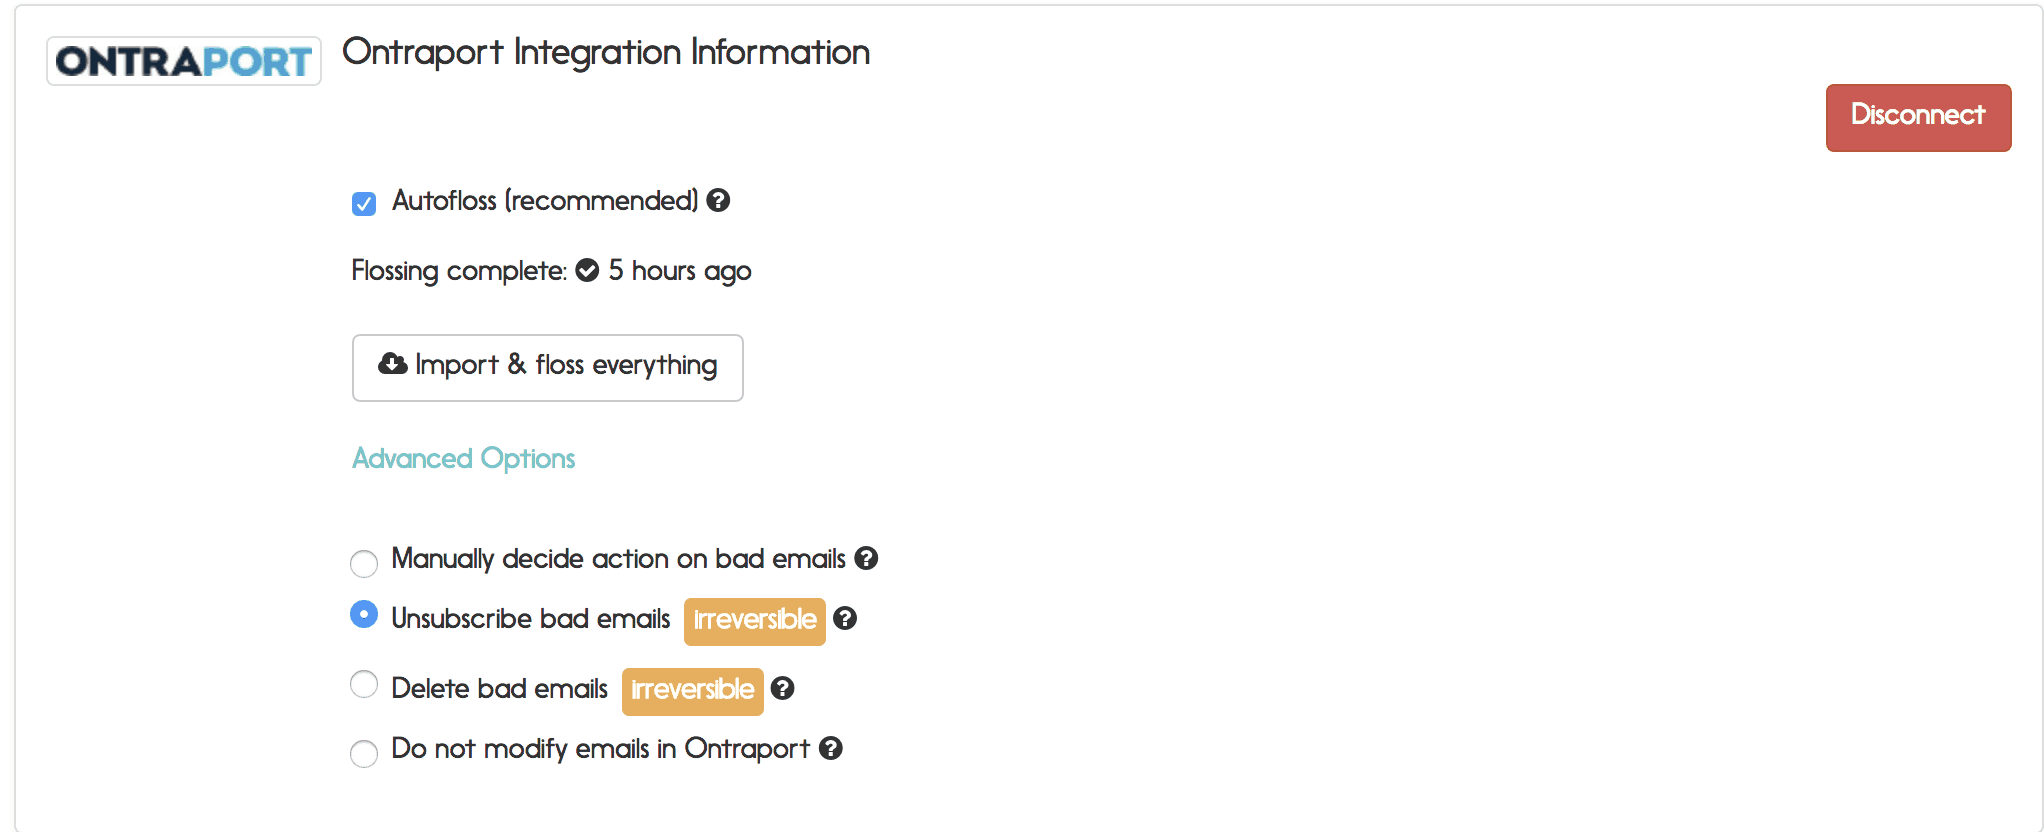 Ontraport email verification options